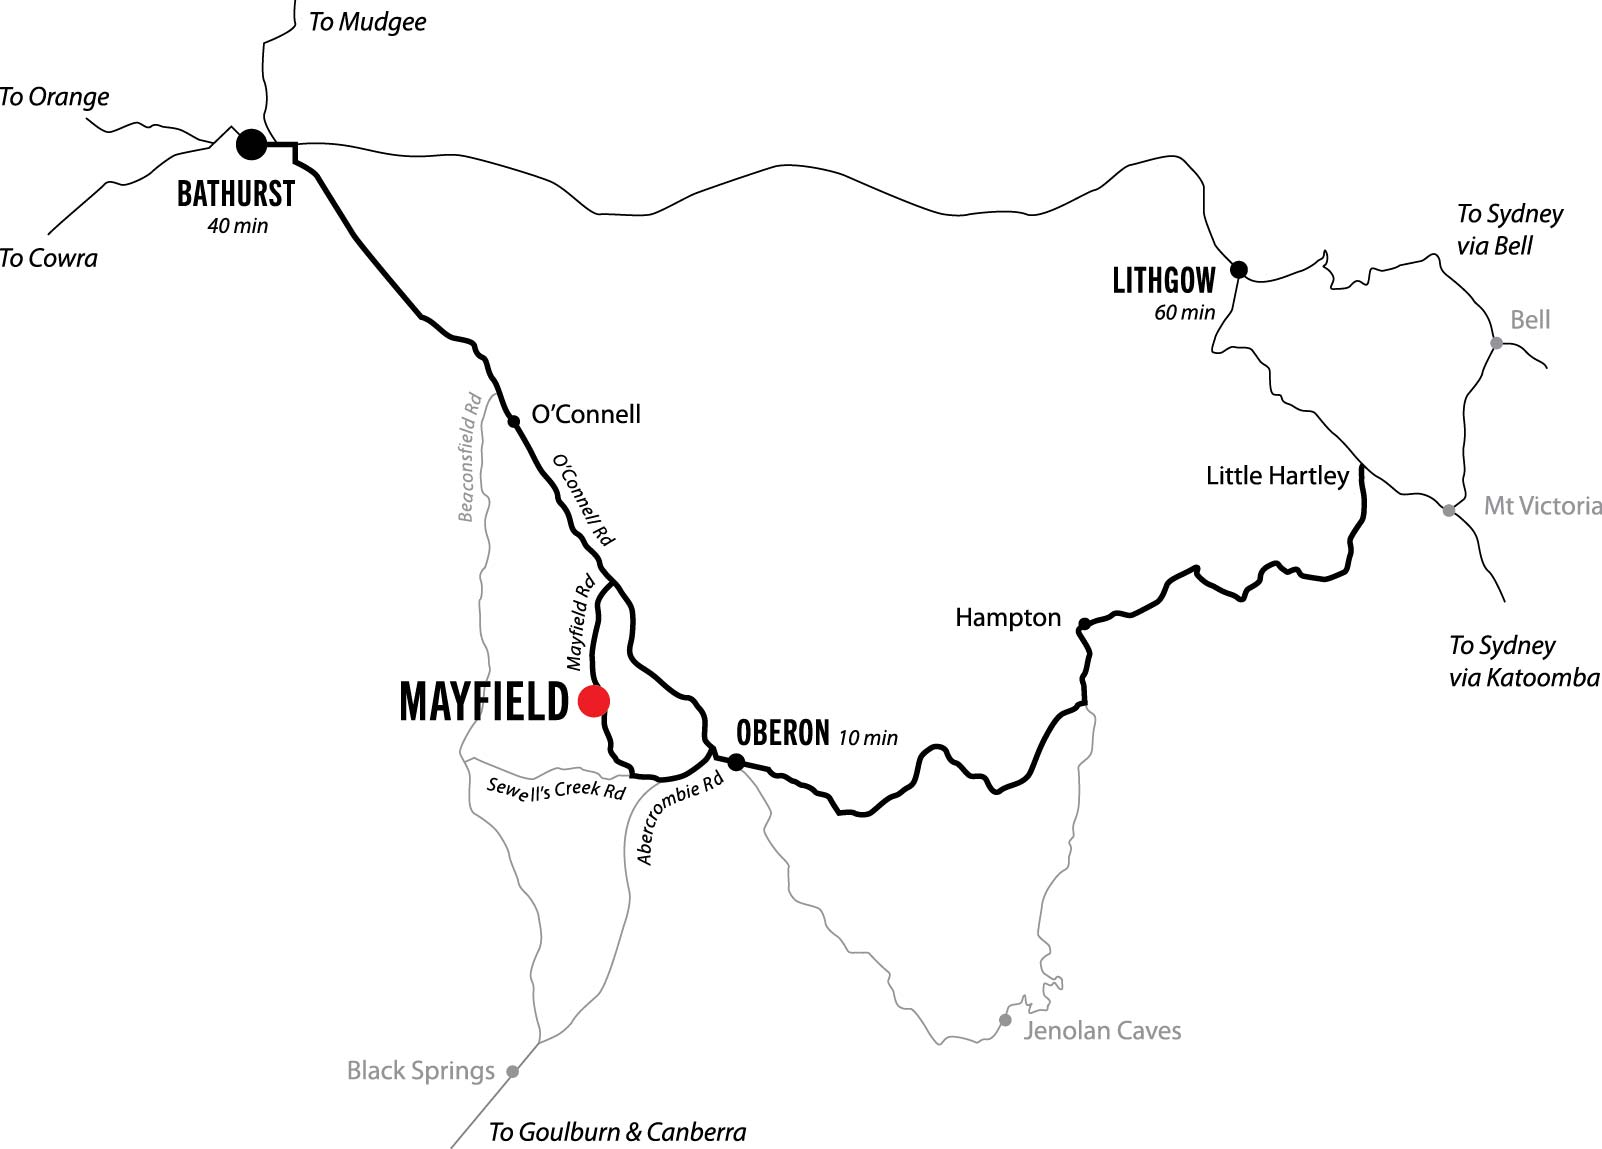 Mayfield on the Map